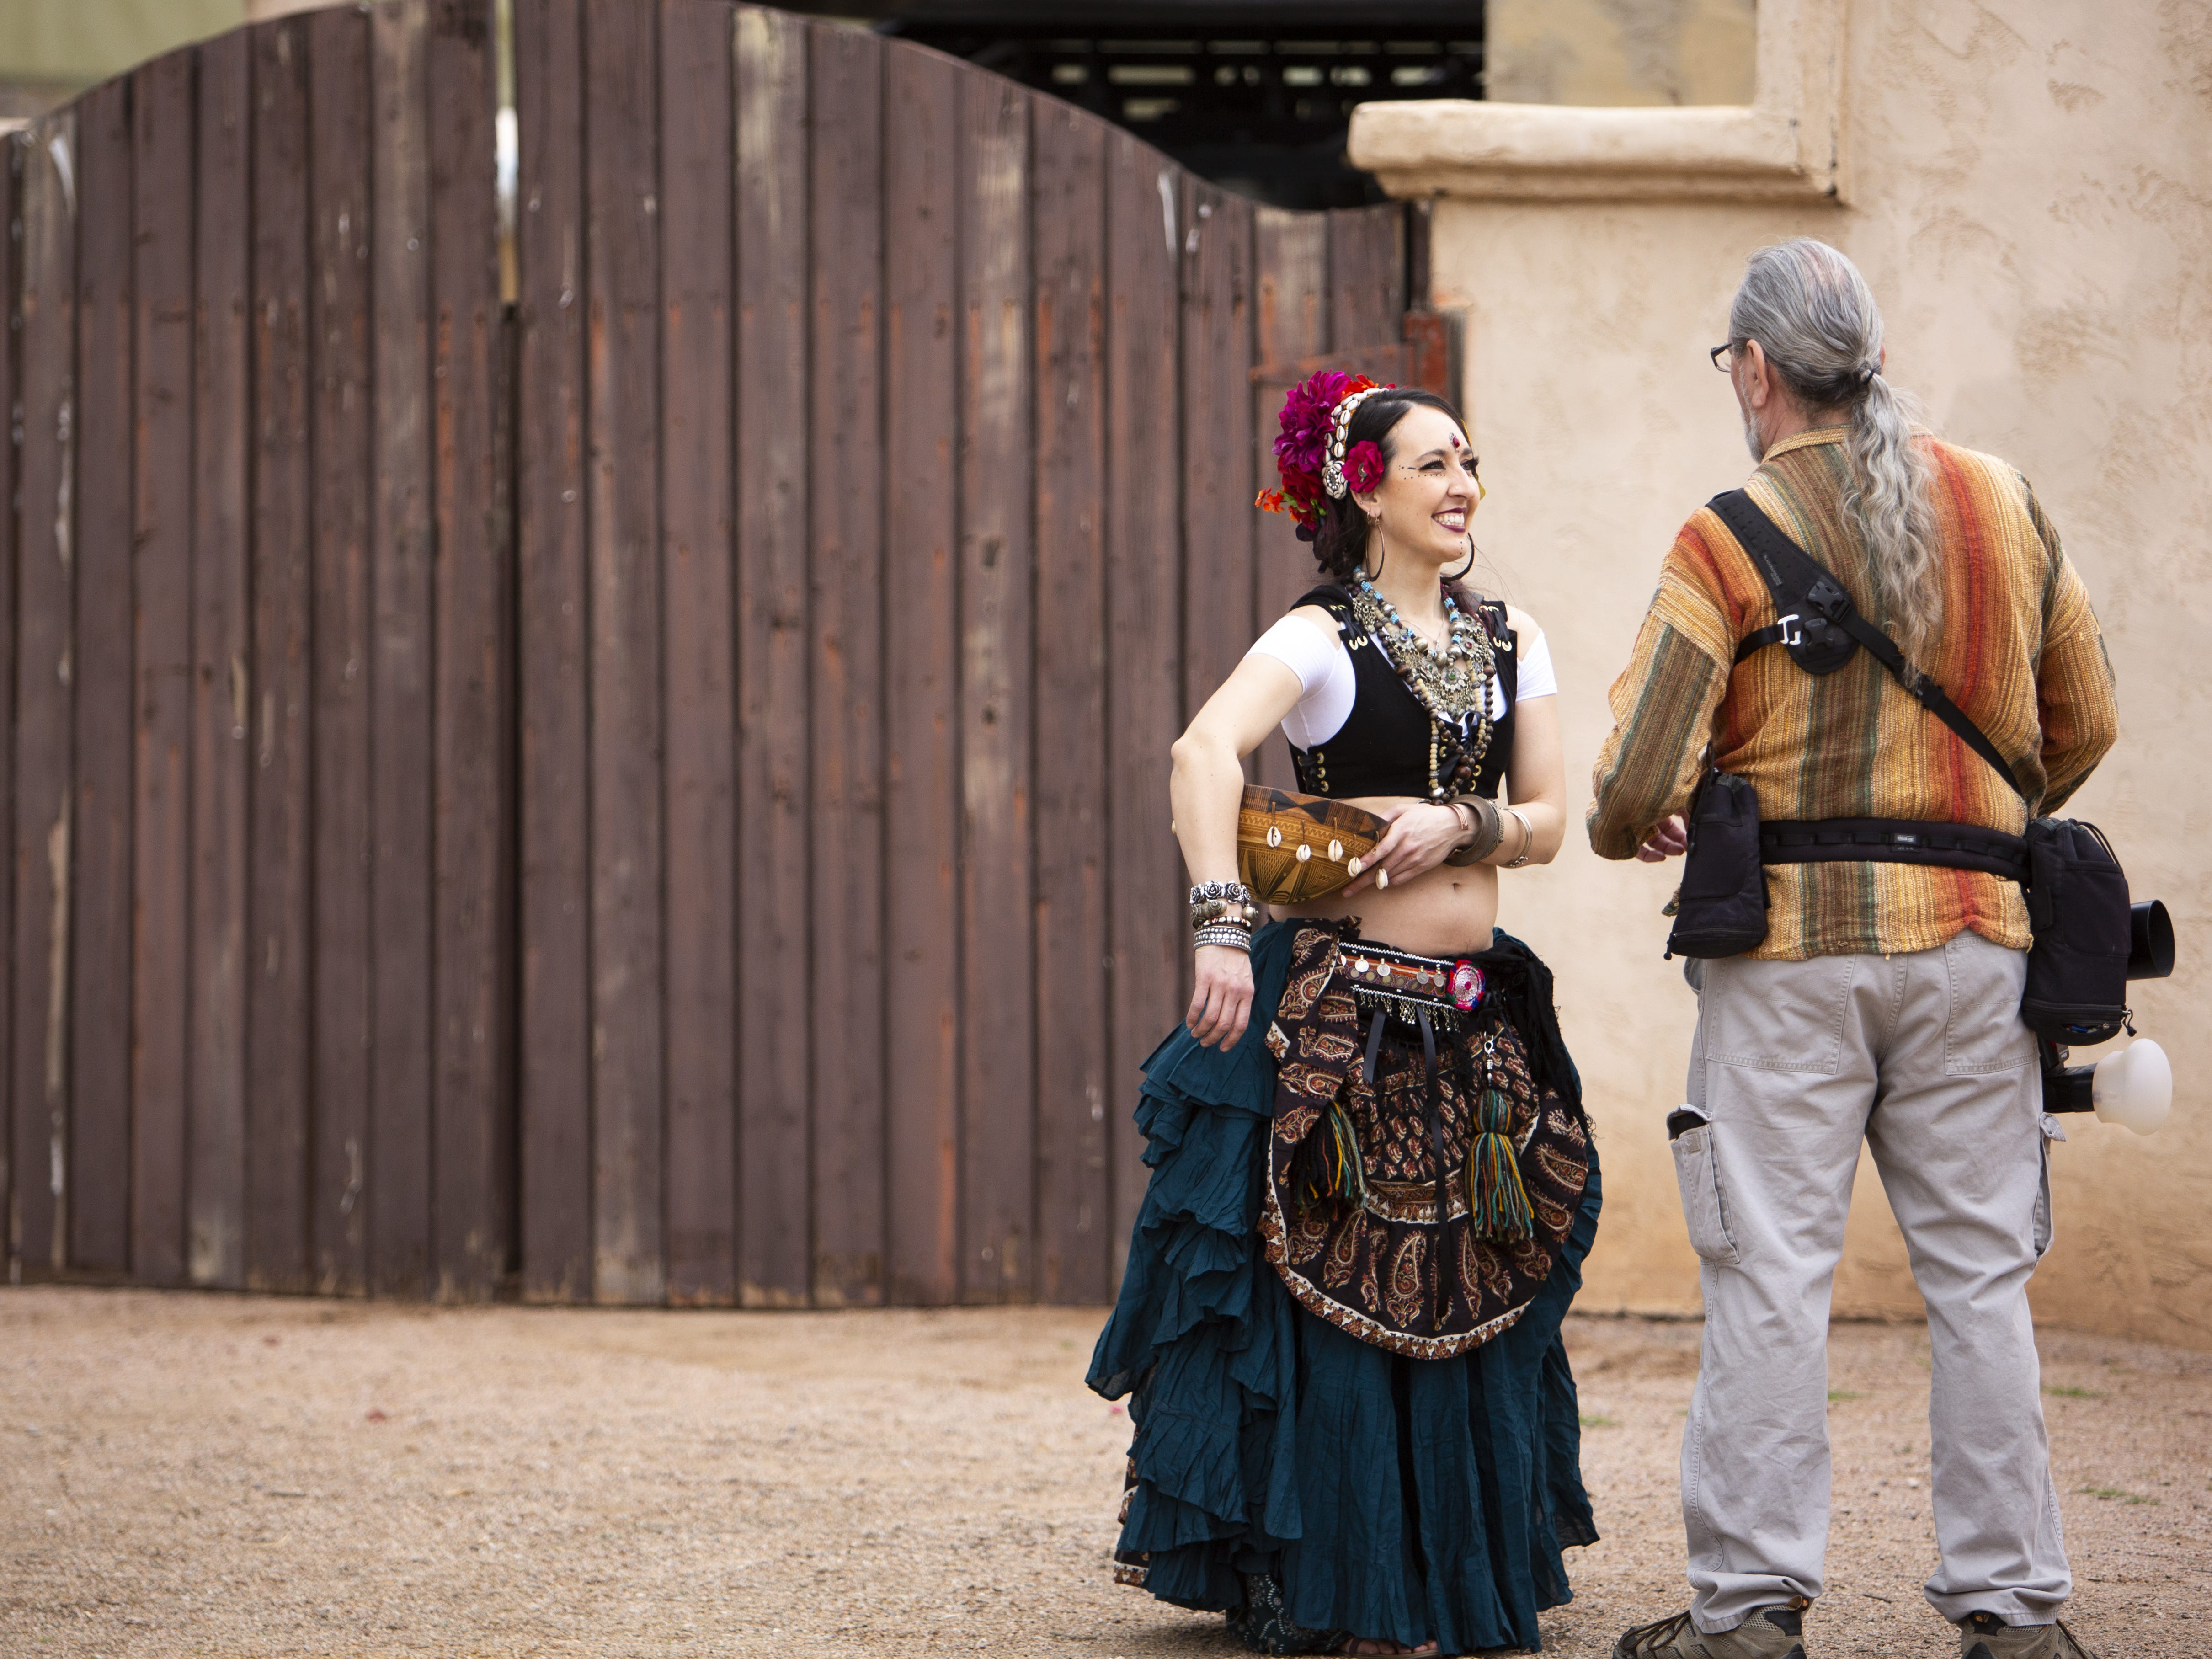 Ghazaal Beledi dancer Nicole Lopez talks to a man taking photos at the Arizona Renaissance Festival 2019 on Feb. 9, 2019 in Gold Canyon, Ariz.